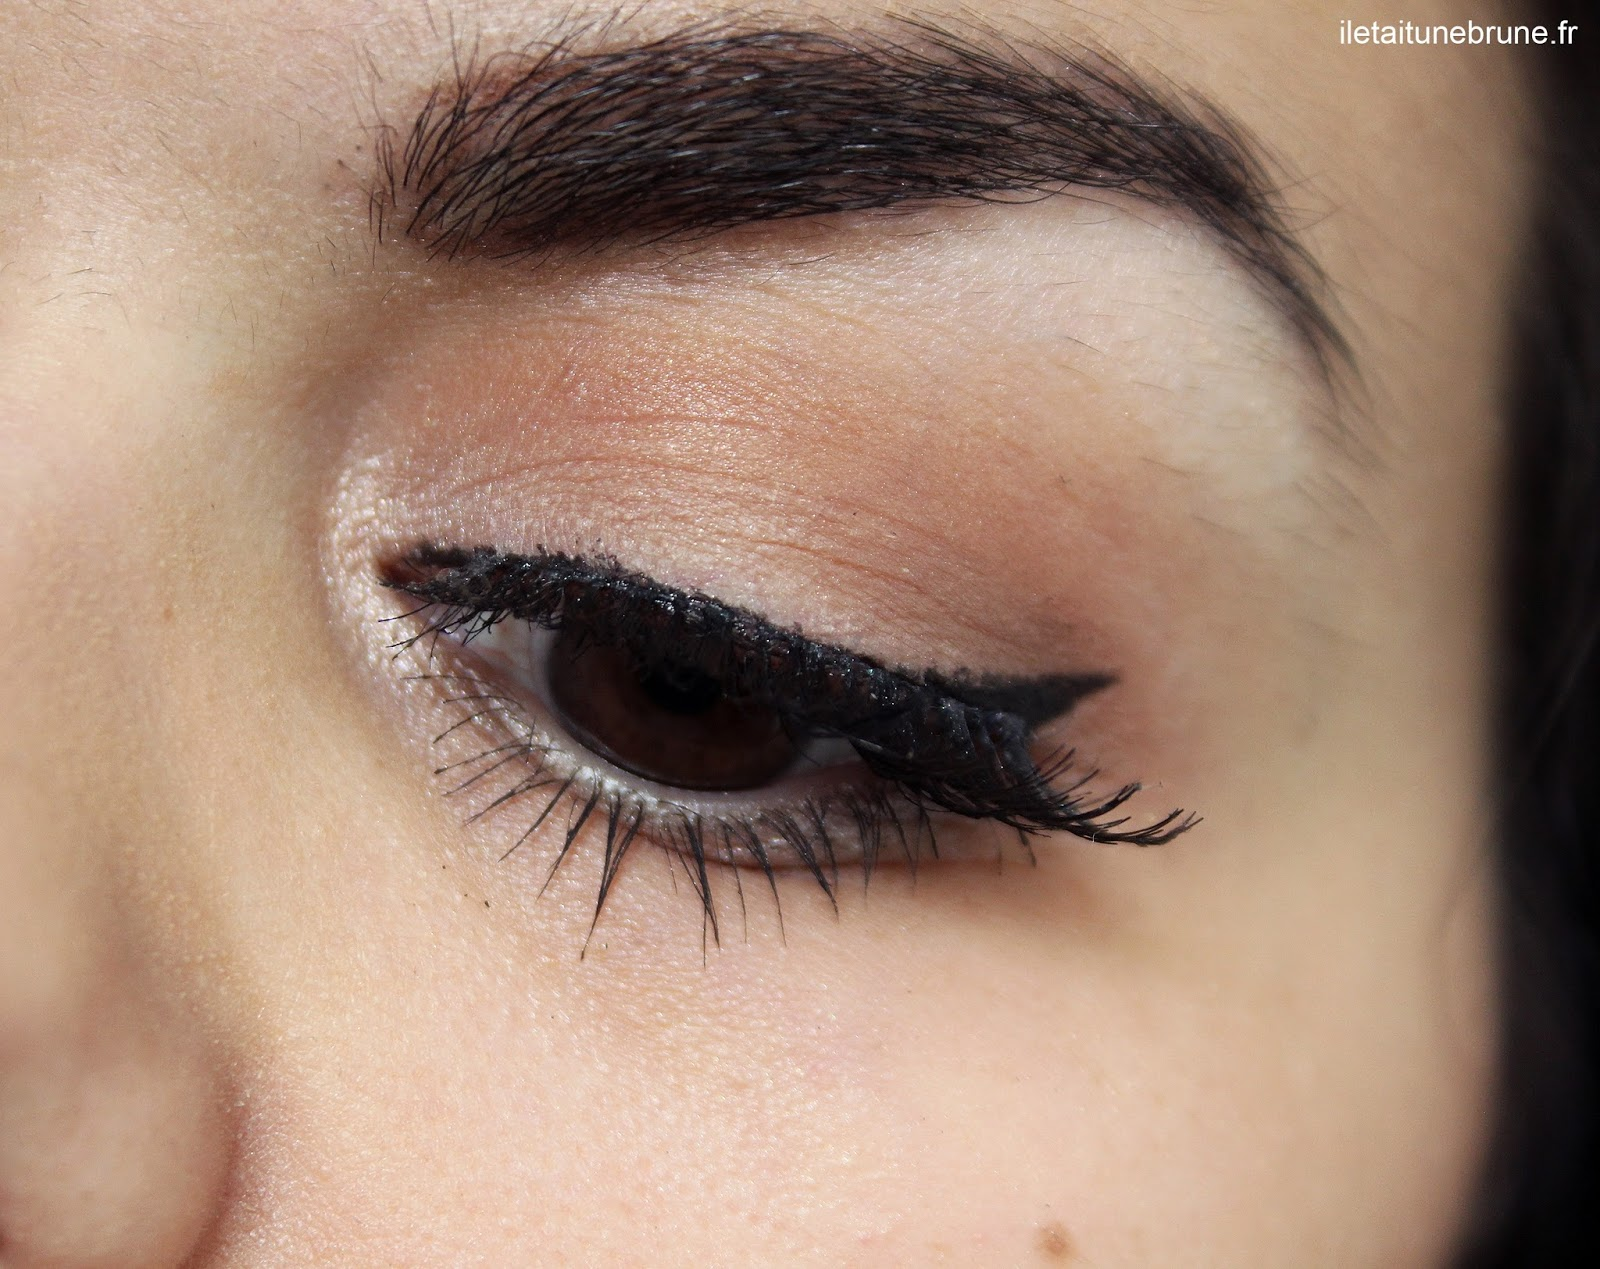 maquillage des yeux nude